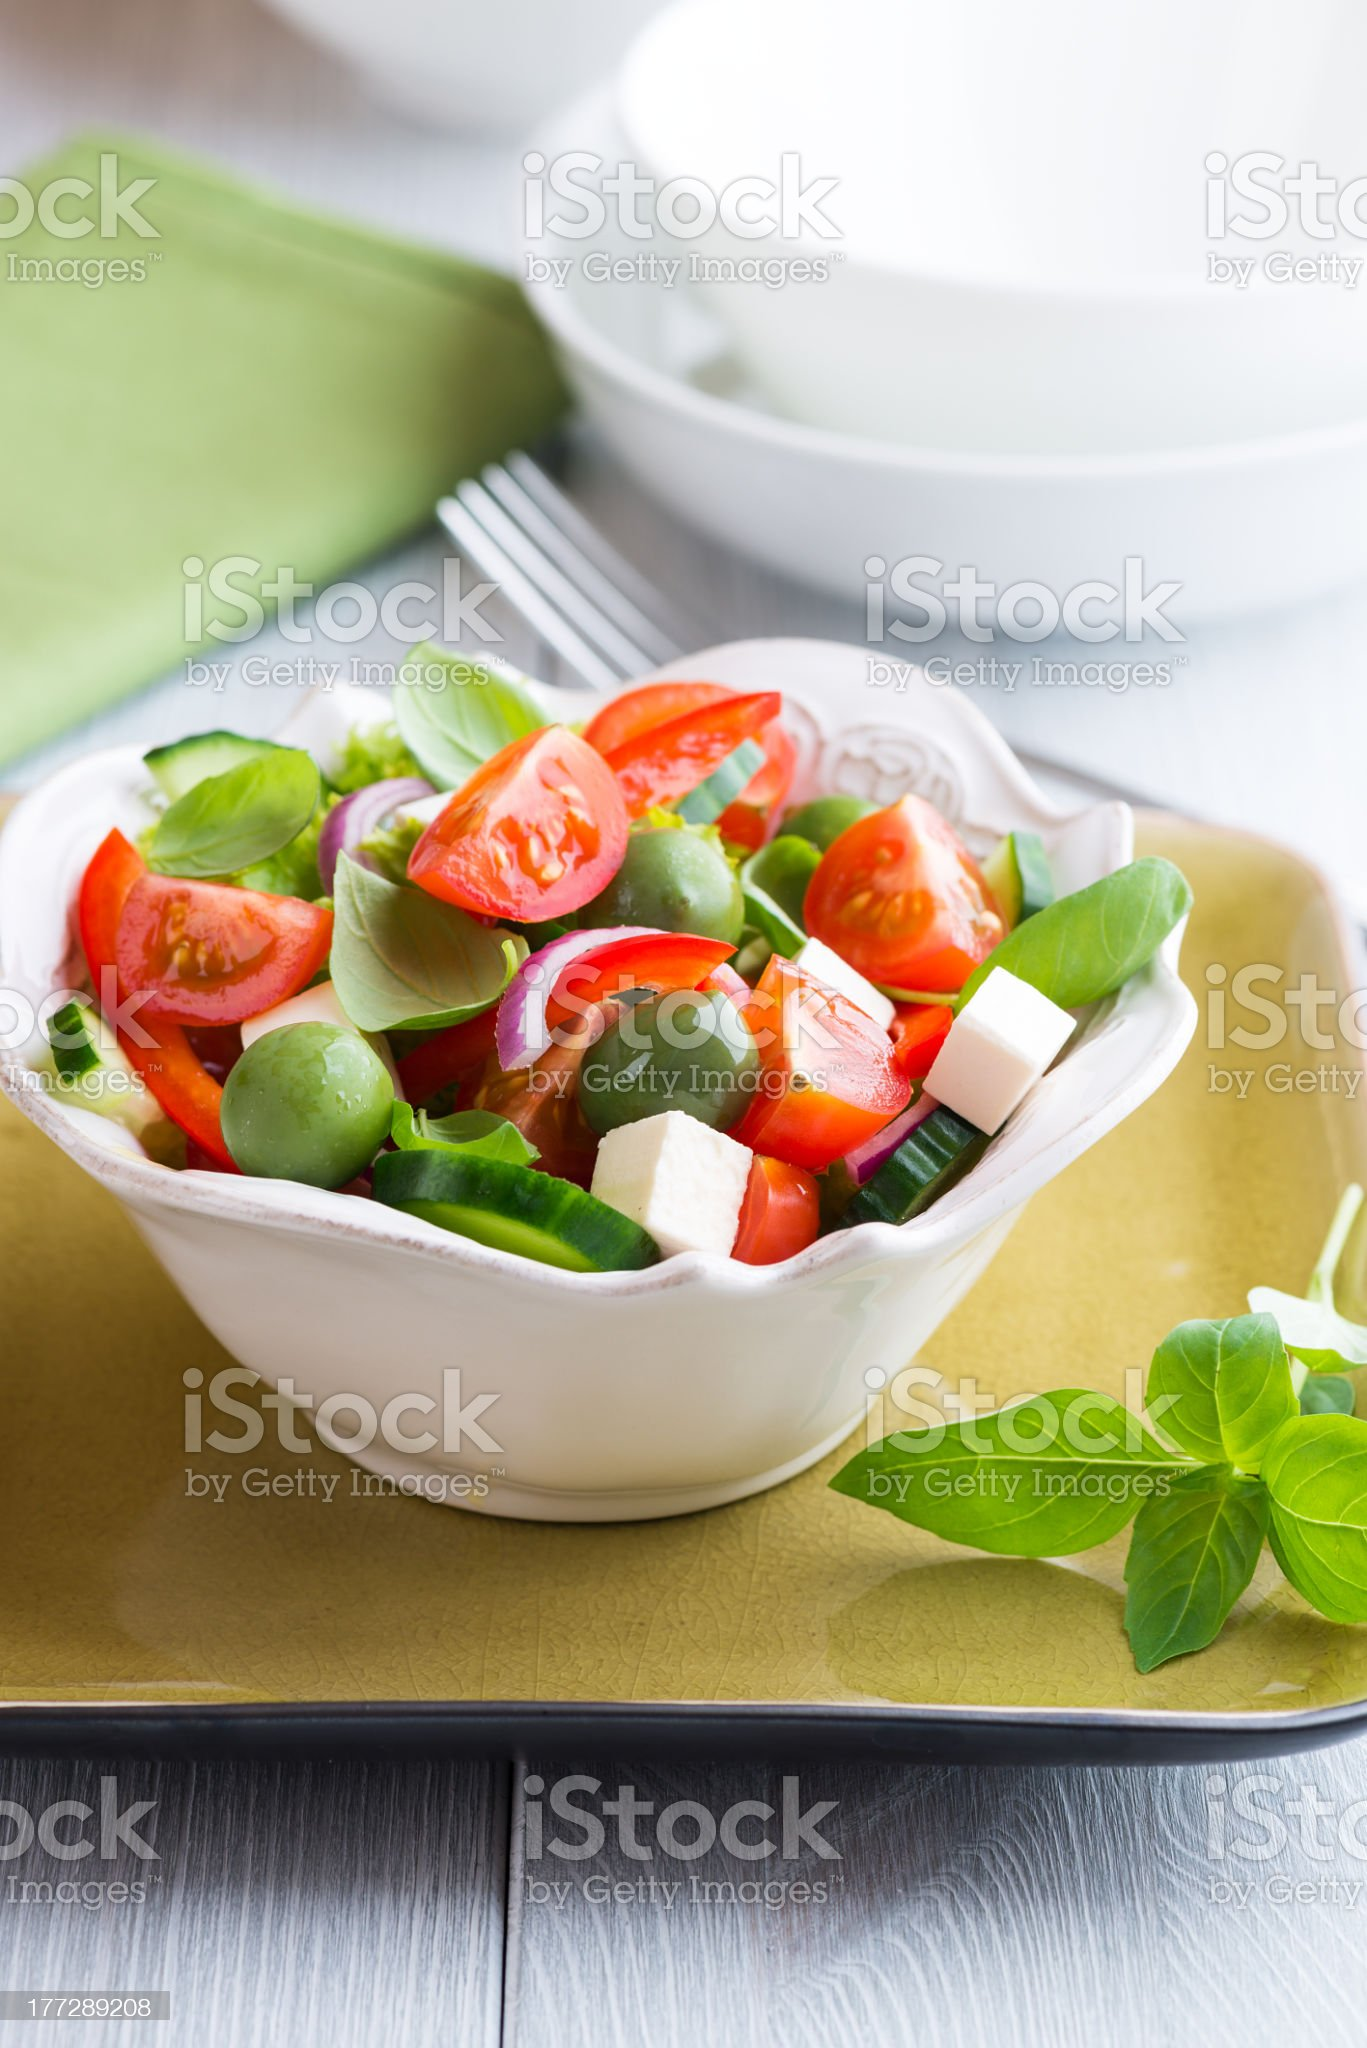 Bowl of Vegetable Salad with Feta Cheese and Olives royalty-free stock photo